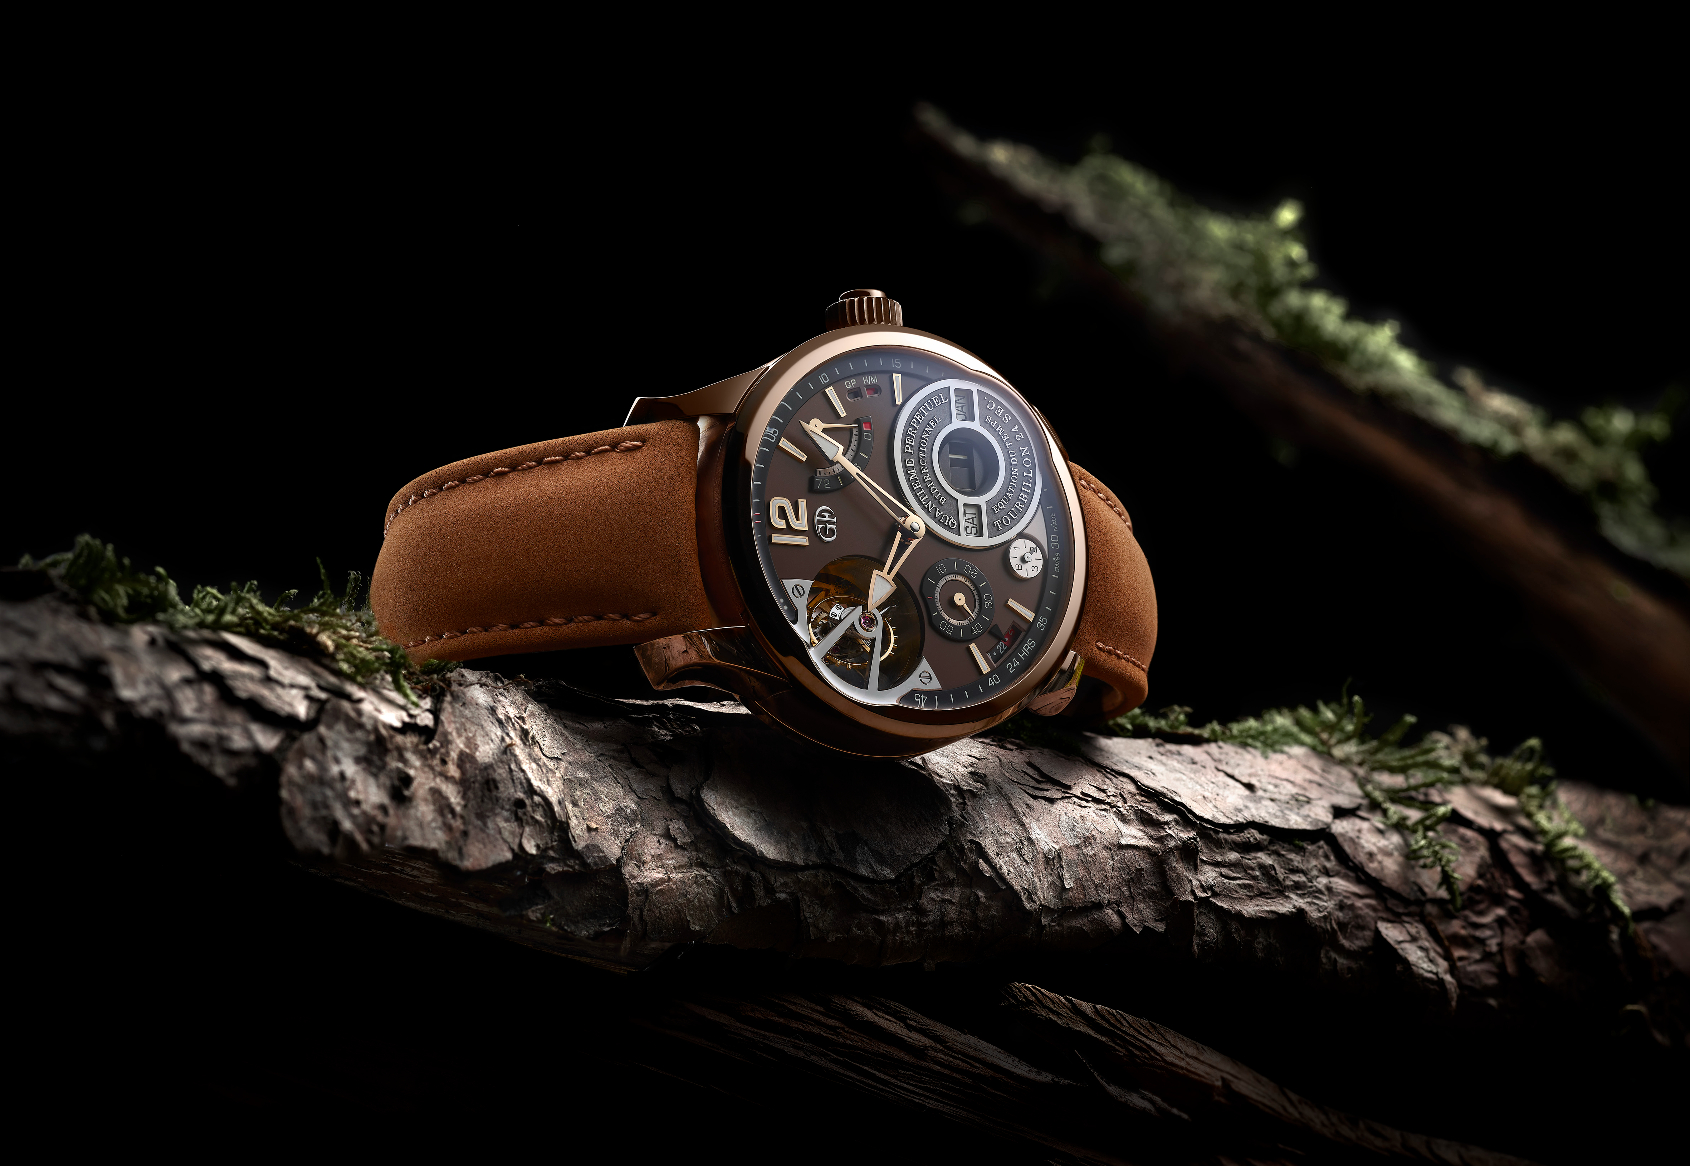 Greubel Forsey goes vegan and will no longer use animal-based leather